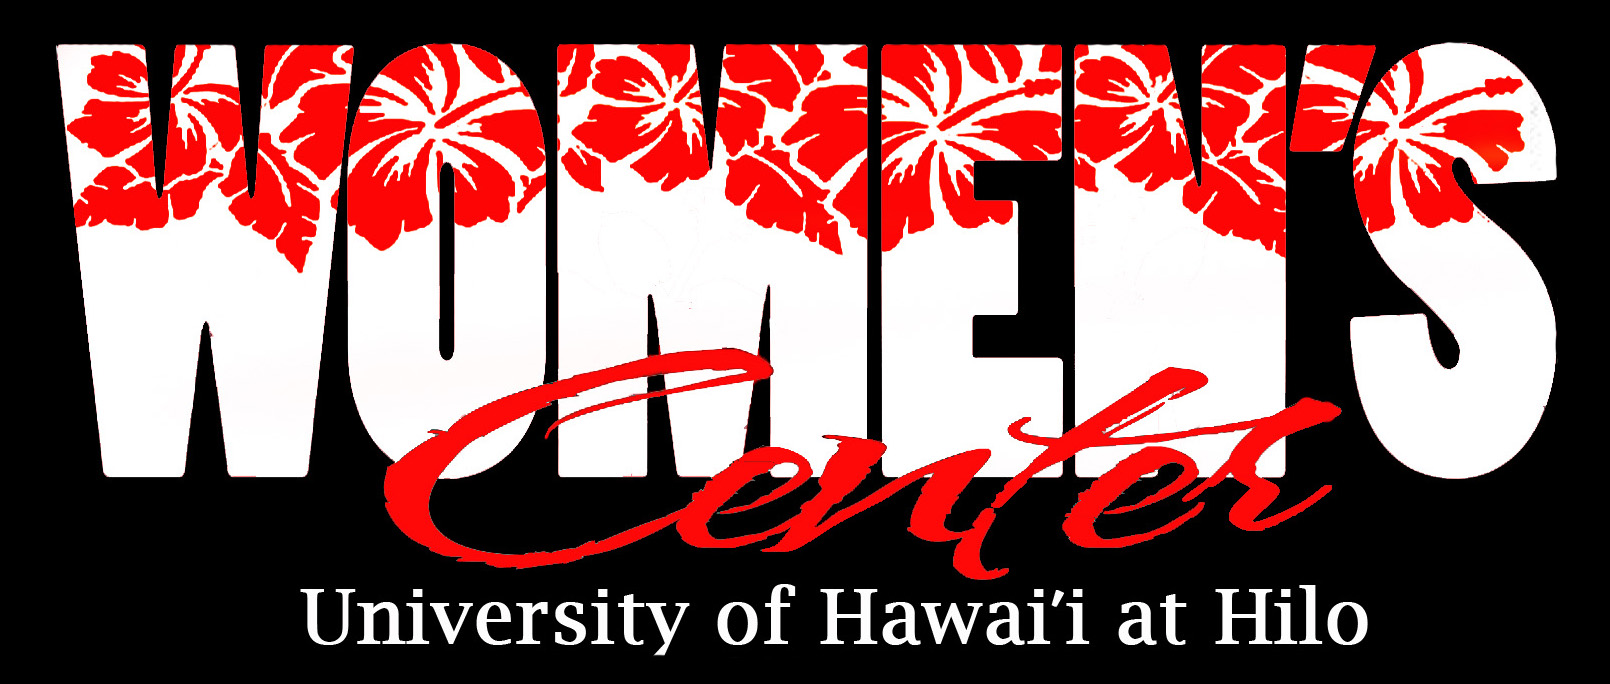 Red Hibiscus background with Womenʻs Center